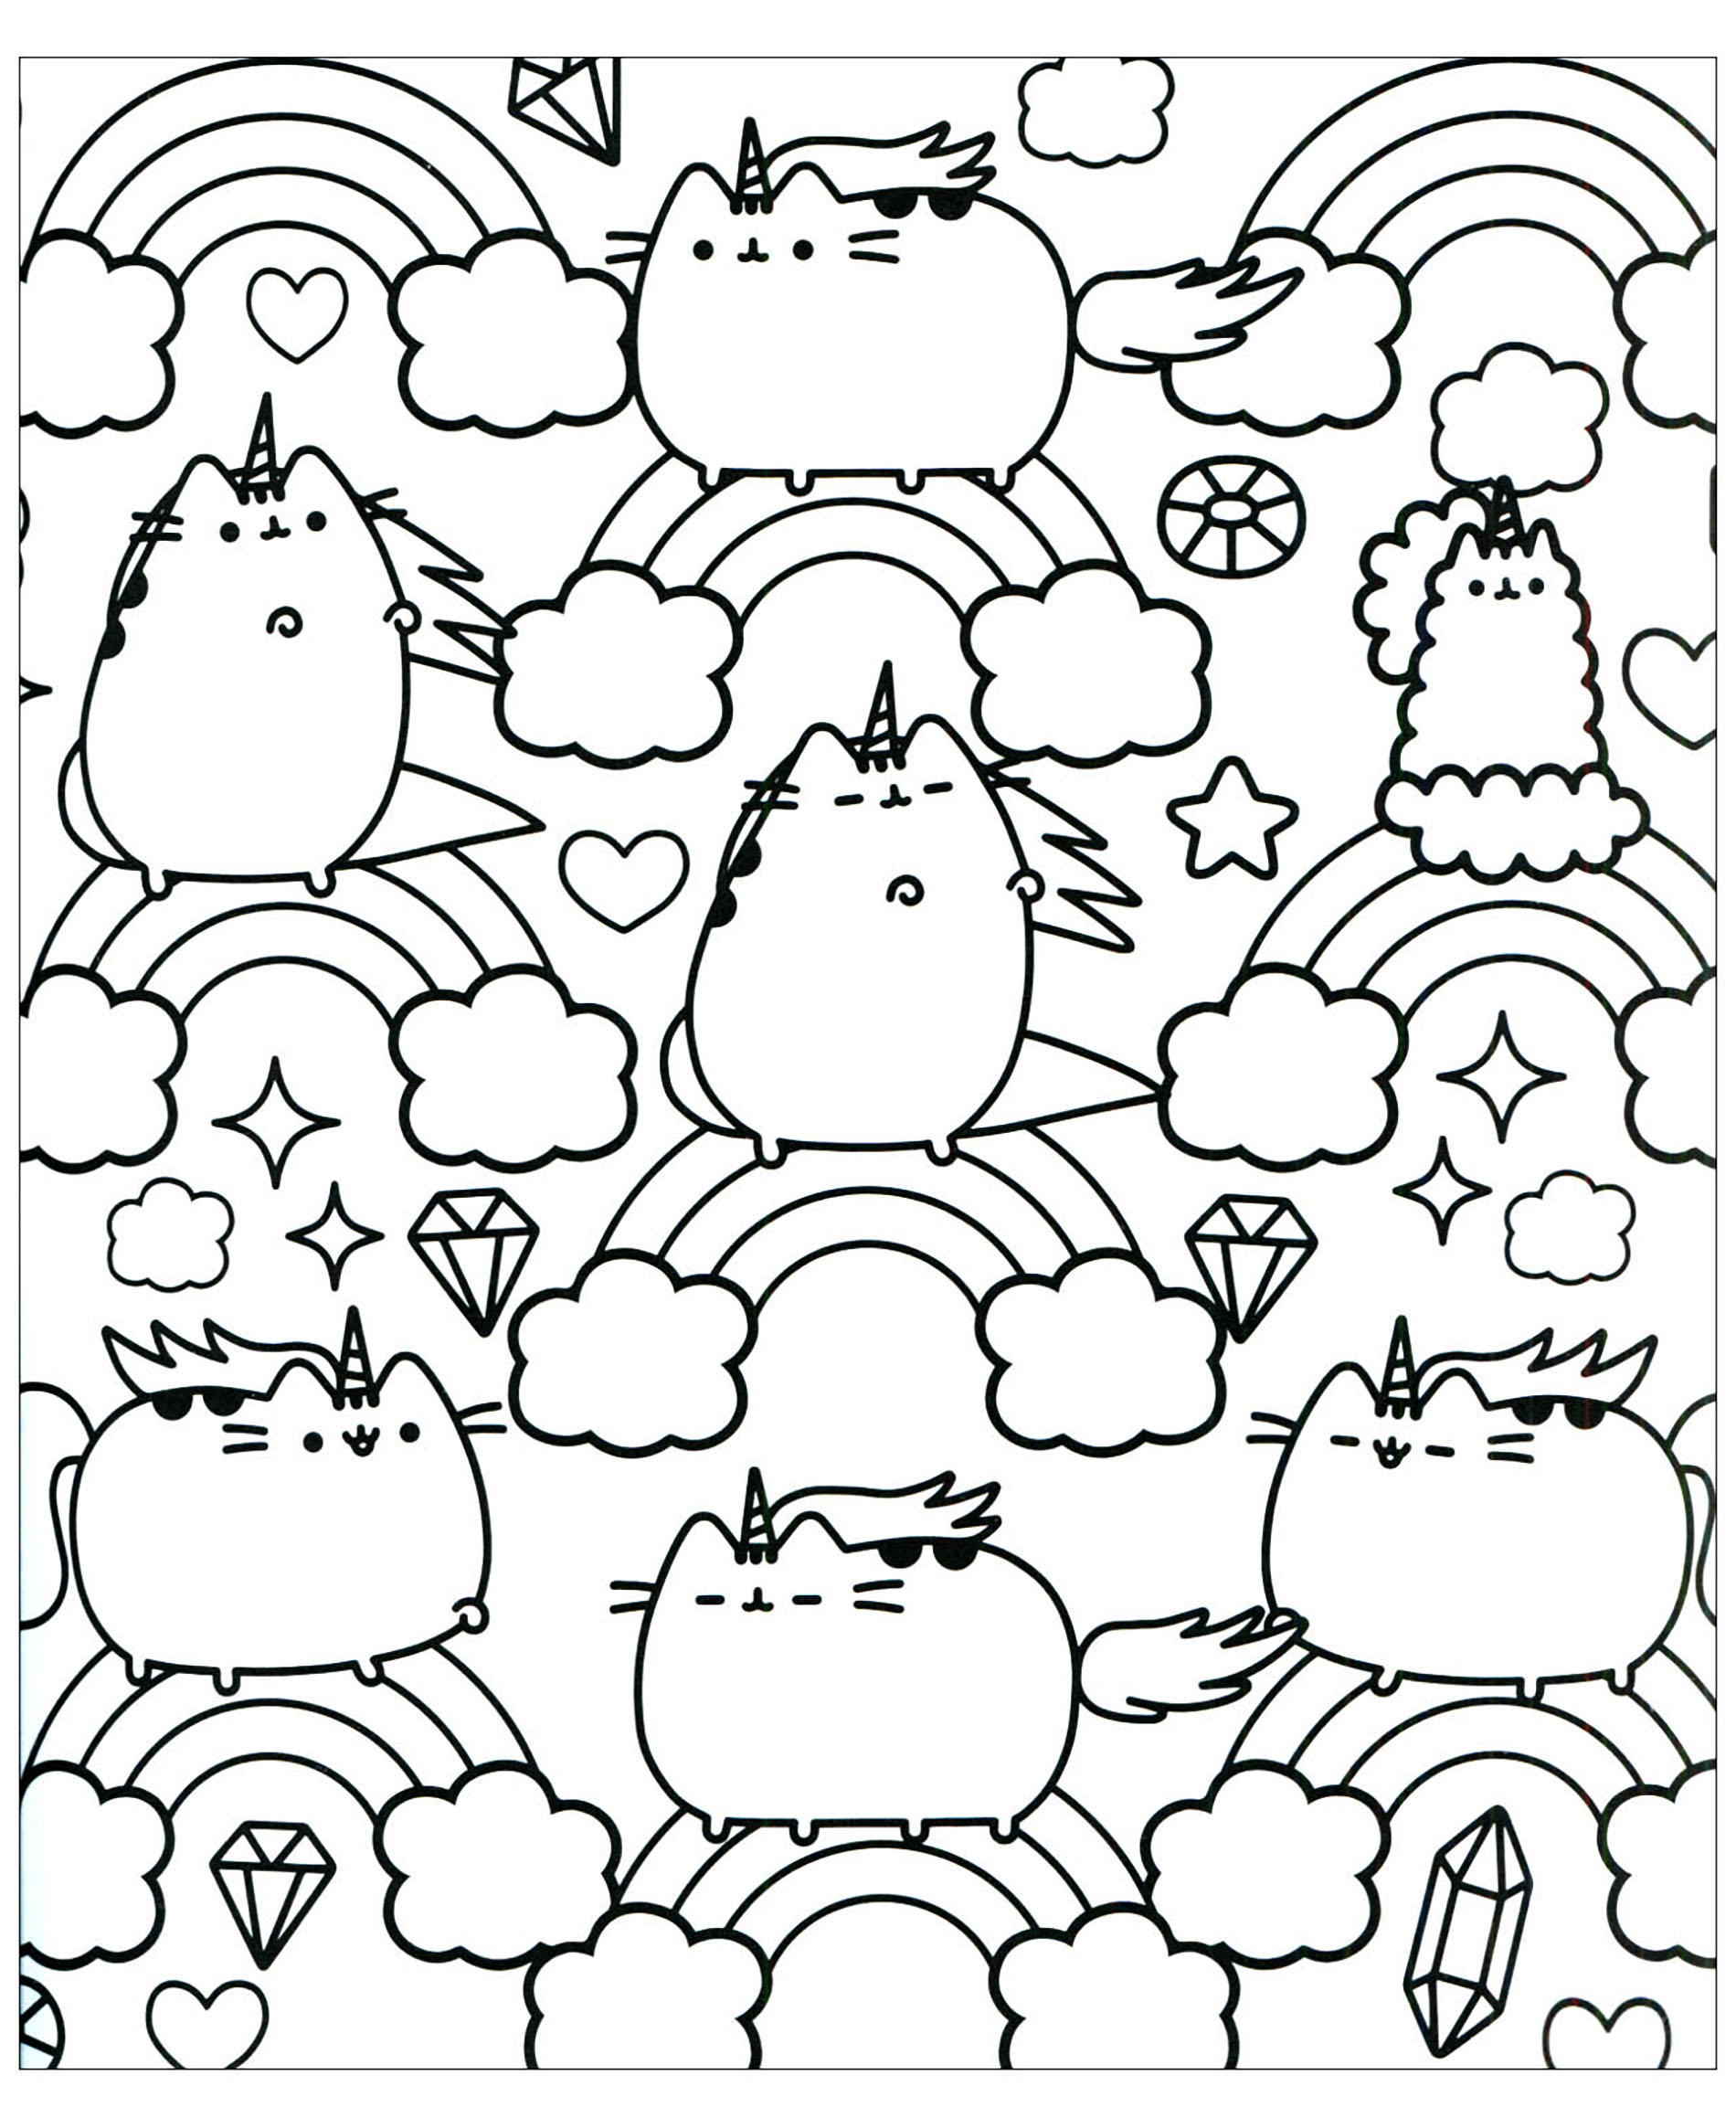 pusheen coloring pages to print Pusheen to color for kids   Pusheen Kids Coloring Pages pusheen coloring pages to print